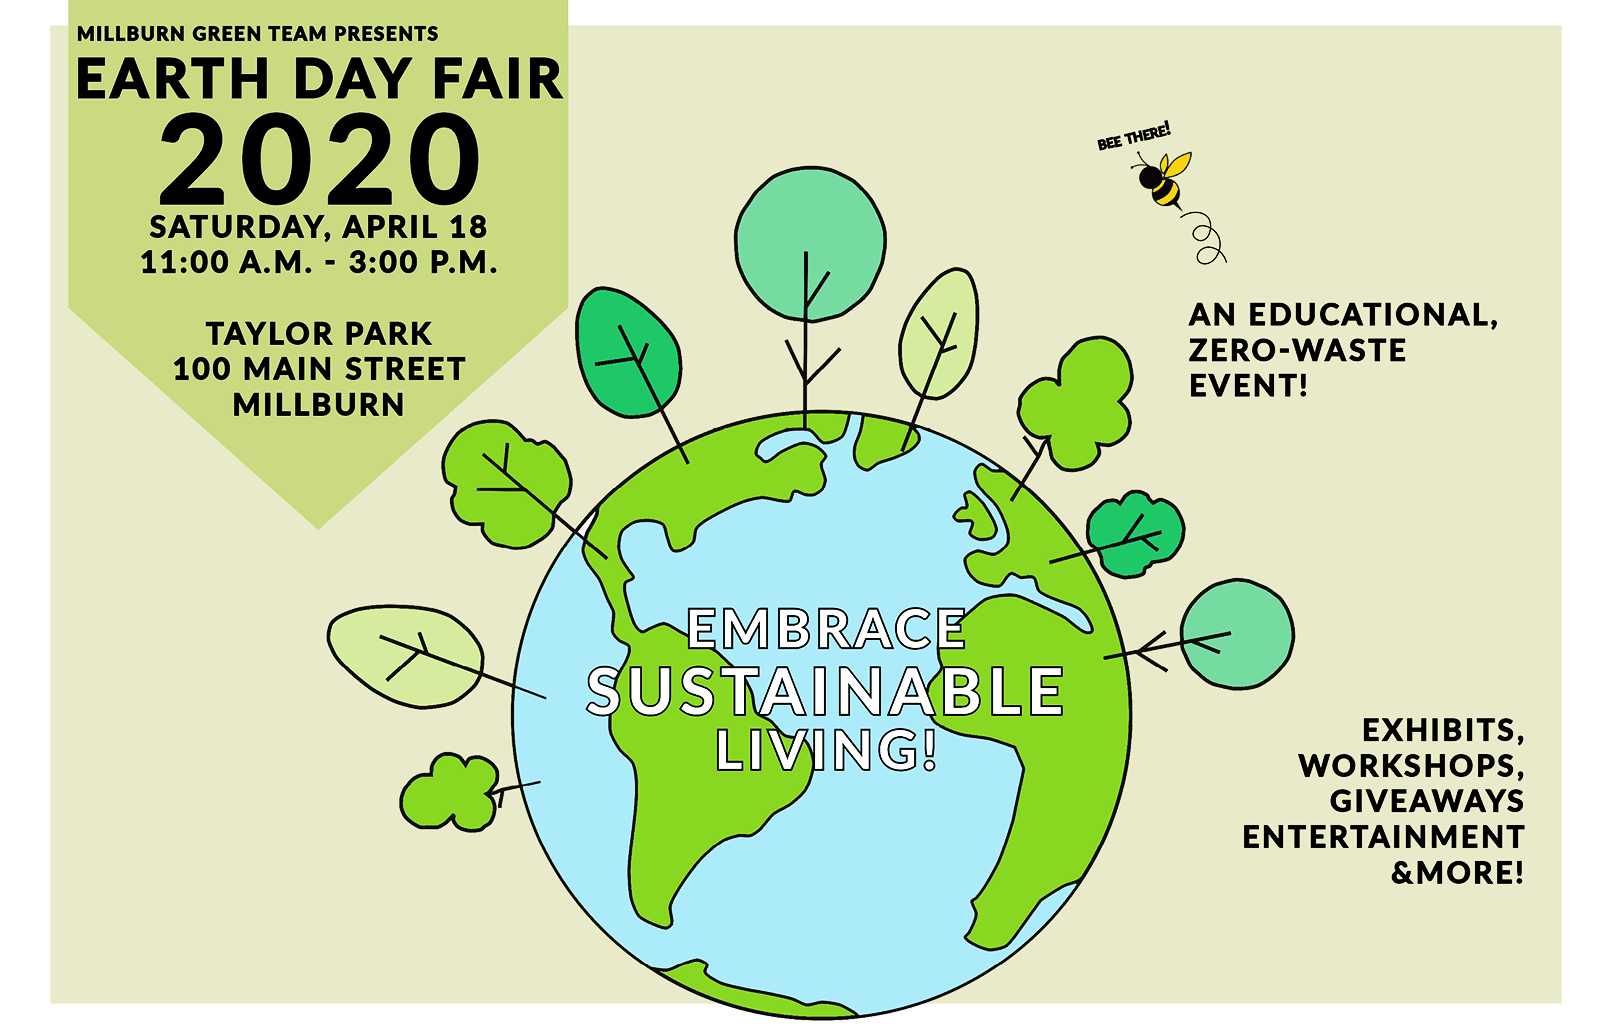 Millburn Green Team Earth Day Fair 2020 poster